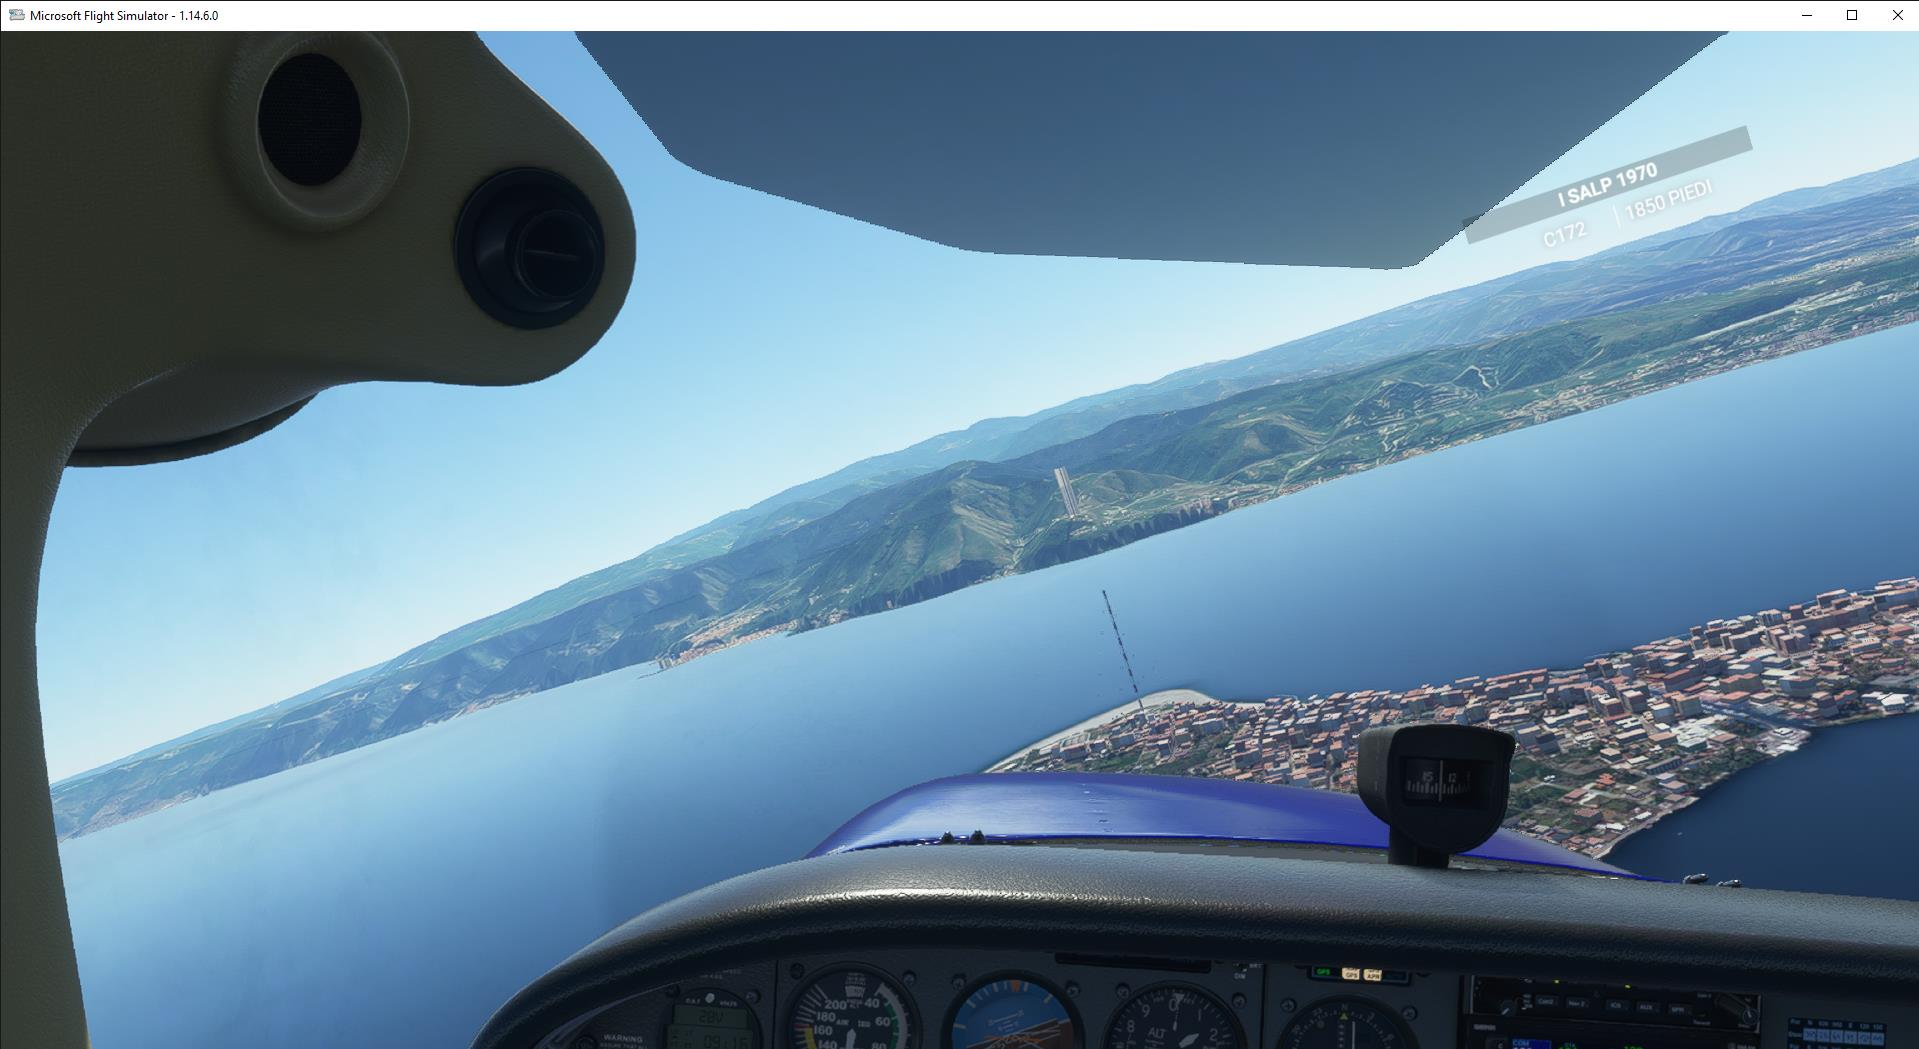 https://vivendobyte.blob.core.windows.net/59034/Microsoft Flight Simulator - 1.14.6.0 05_04_2021 22_36_55.jpg